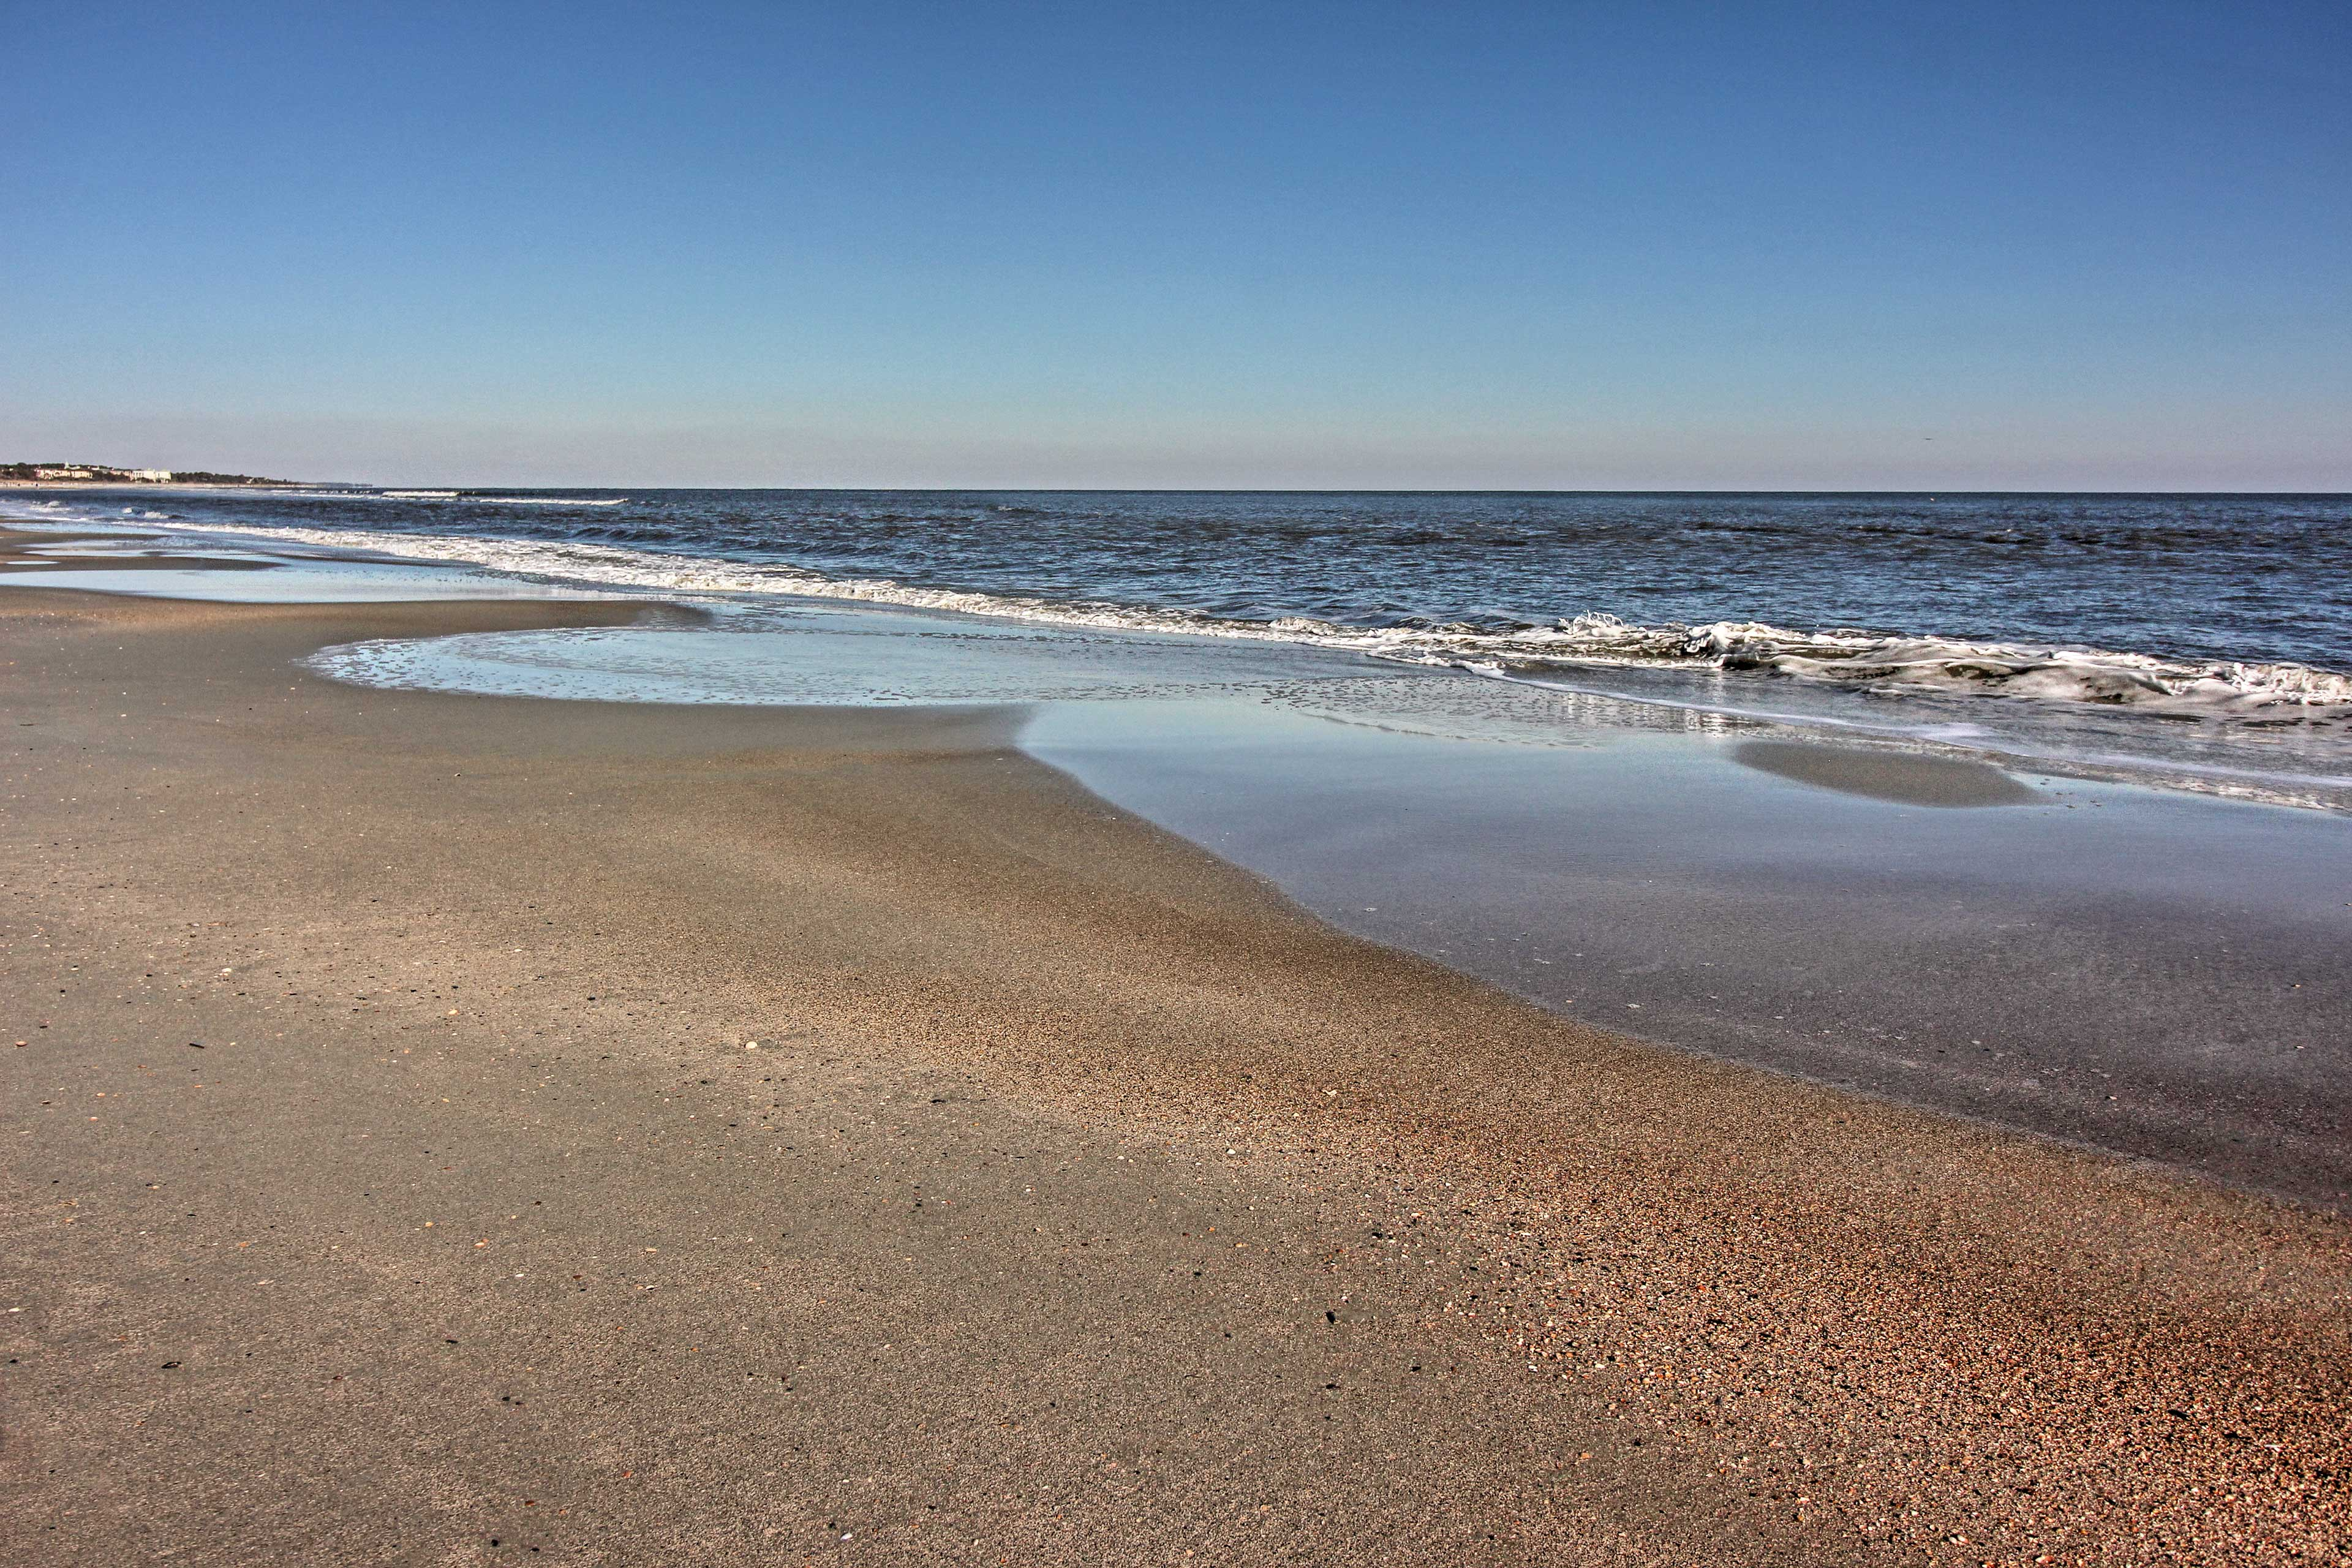 Breathe in the salty sea air and relax during your Hilton Head retreat.